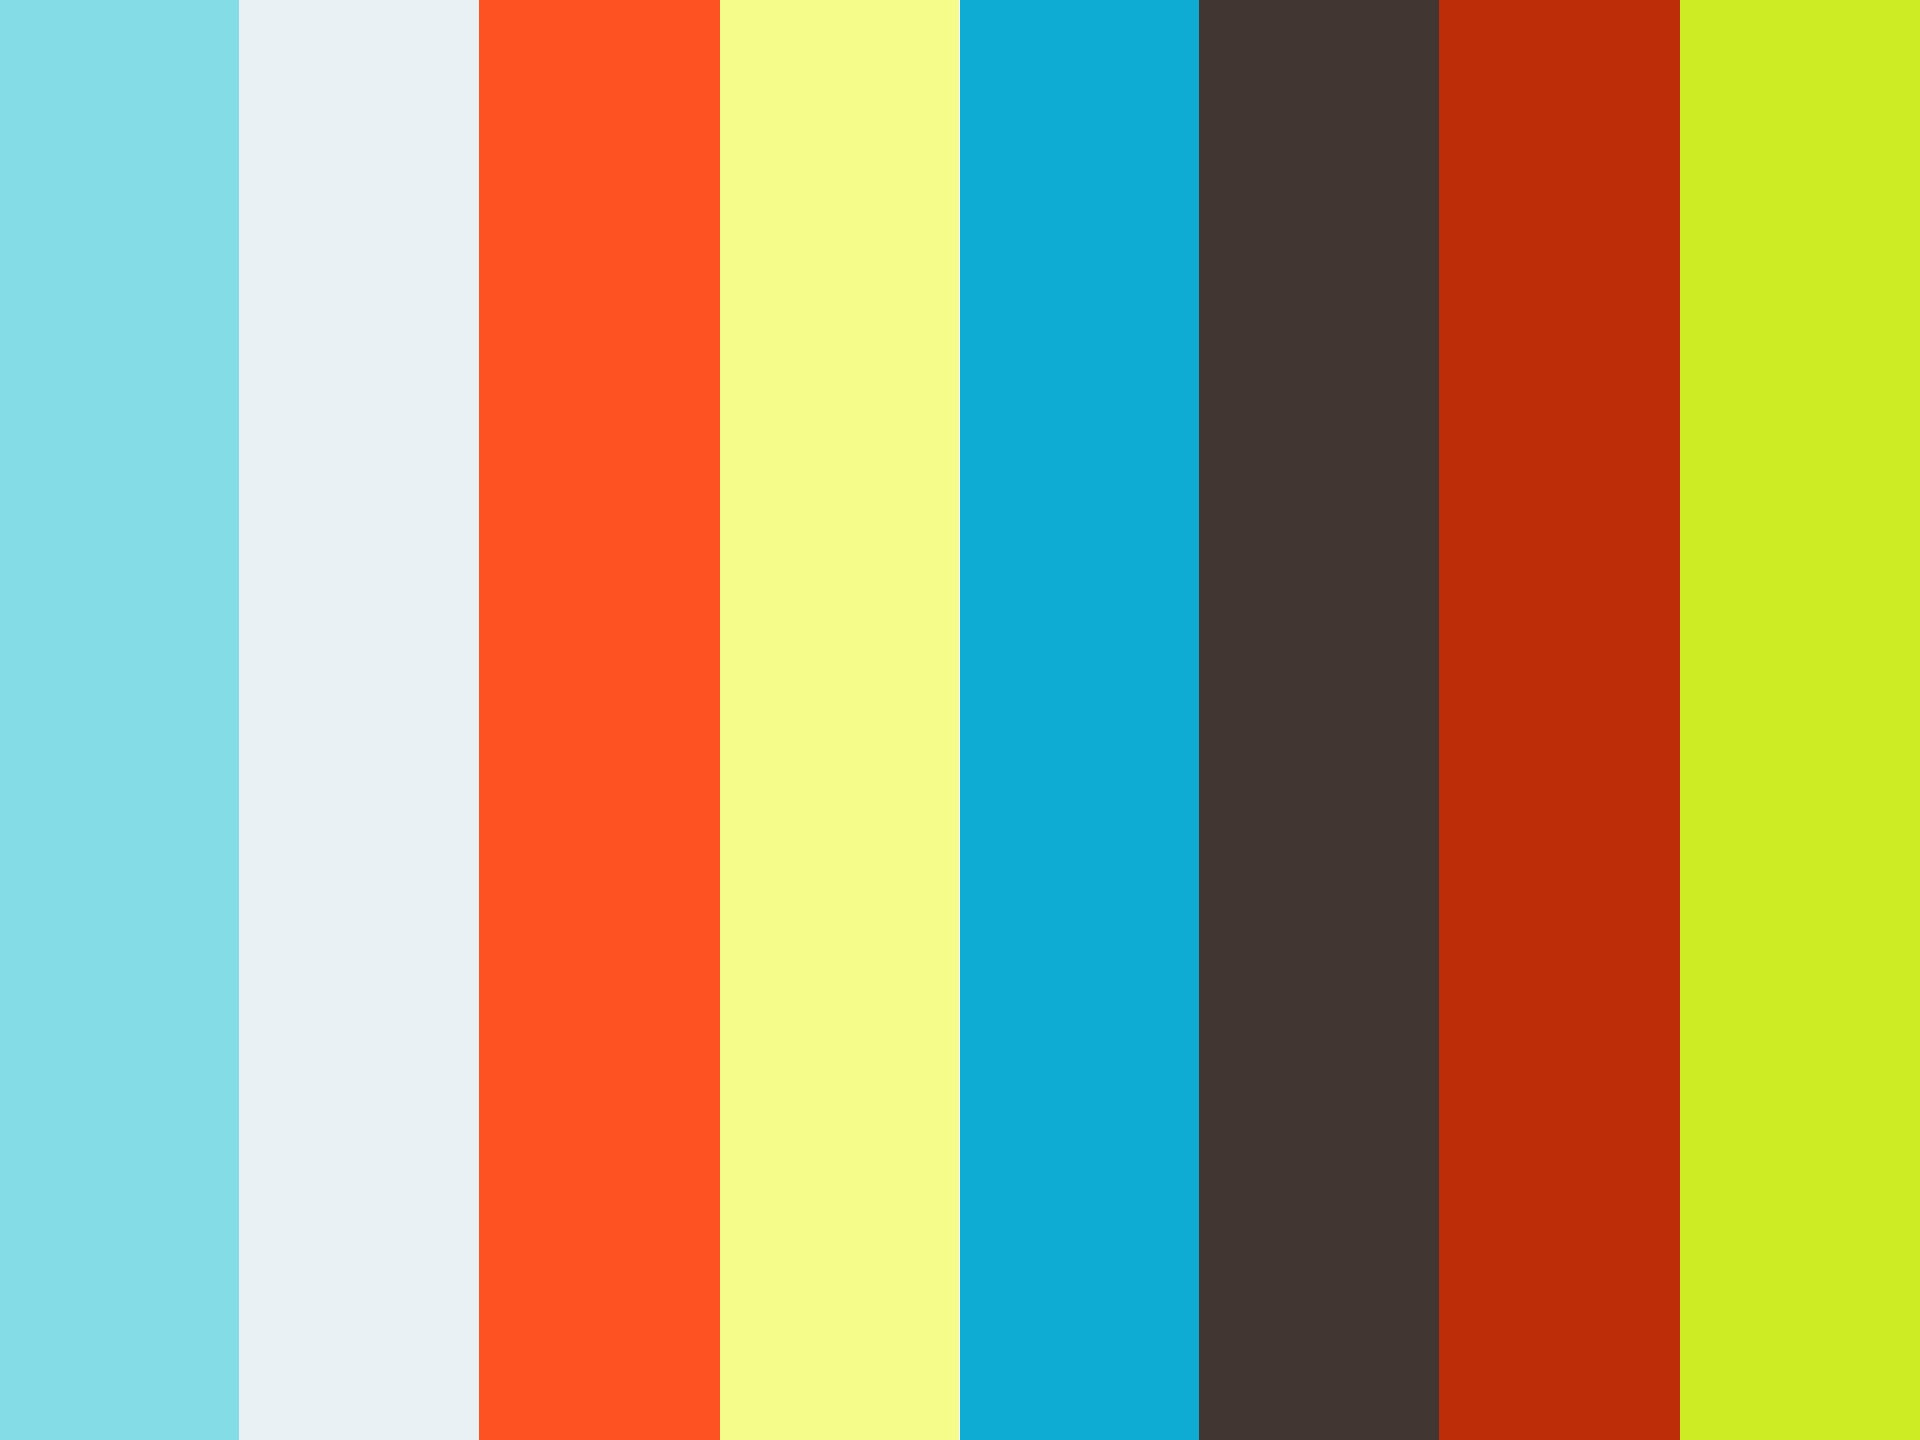 Dr. Paniello on Studio10